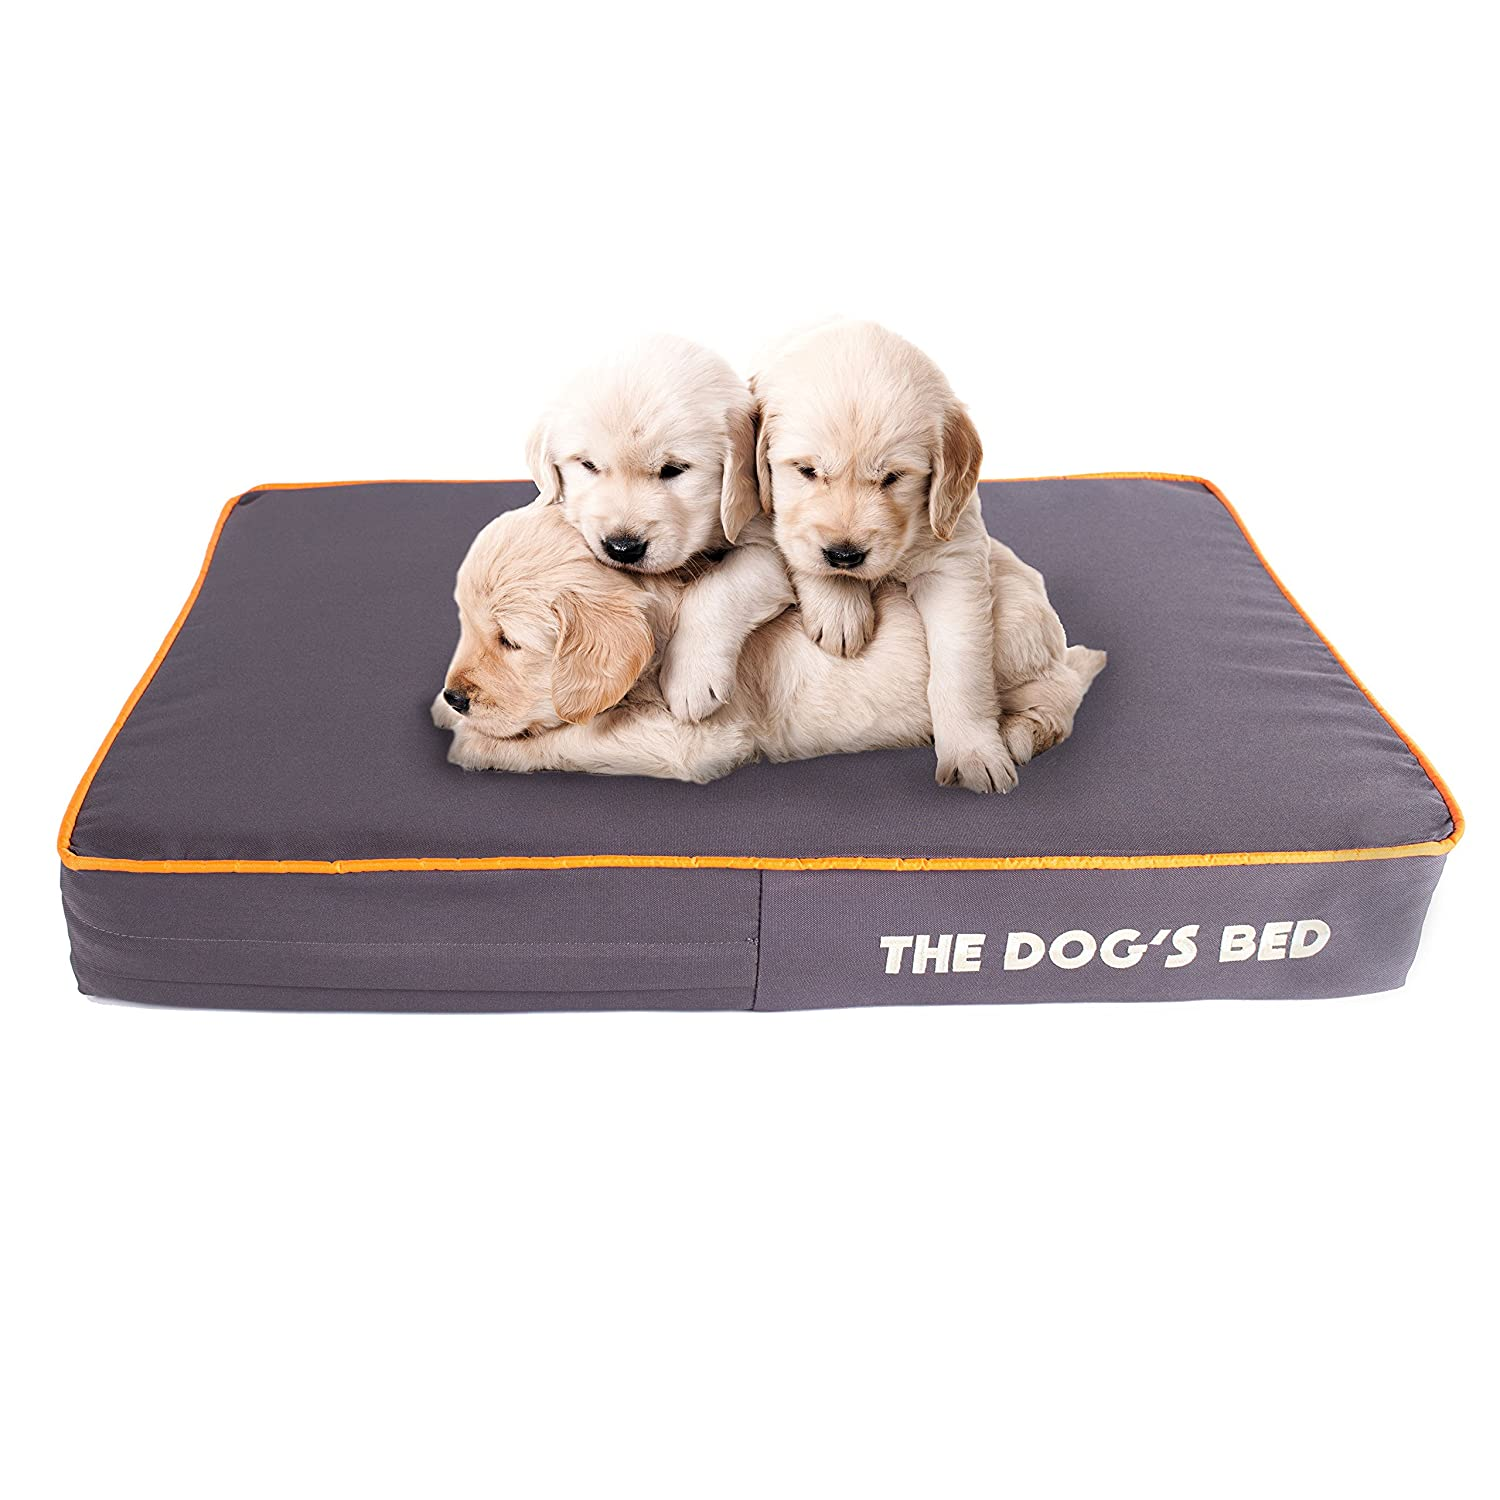 Grey with orange Trim Small Bed (71x48x10cm)The Dog's Bed, Premium Orthopedic Waterproof Memory Foam Dog Beds, 5 Sizes 7 Colours  Eases Pet Arthritis, Hip Dysplasia & Post Op Pain, Quality Therapeutic Supportive Bed, Washable Oxford Cover